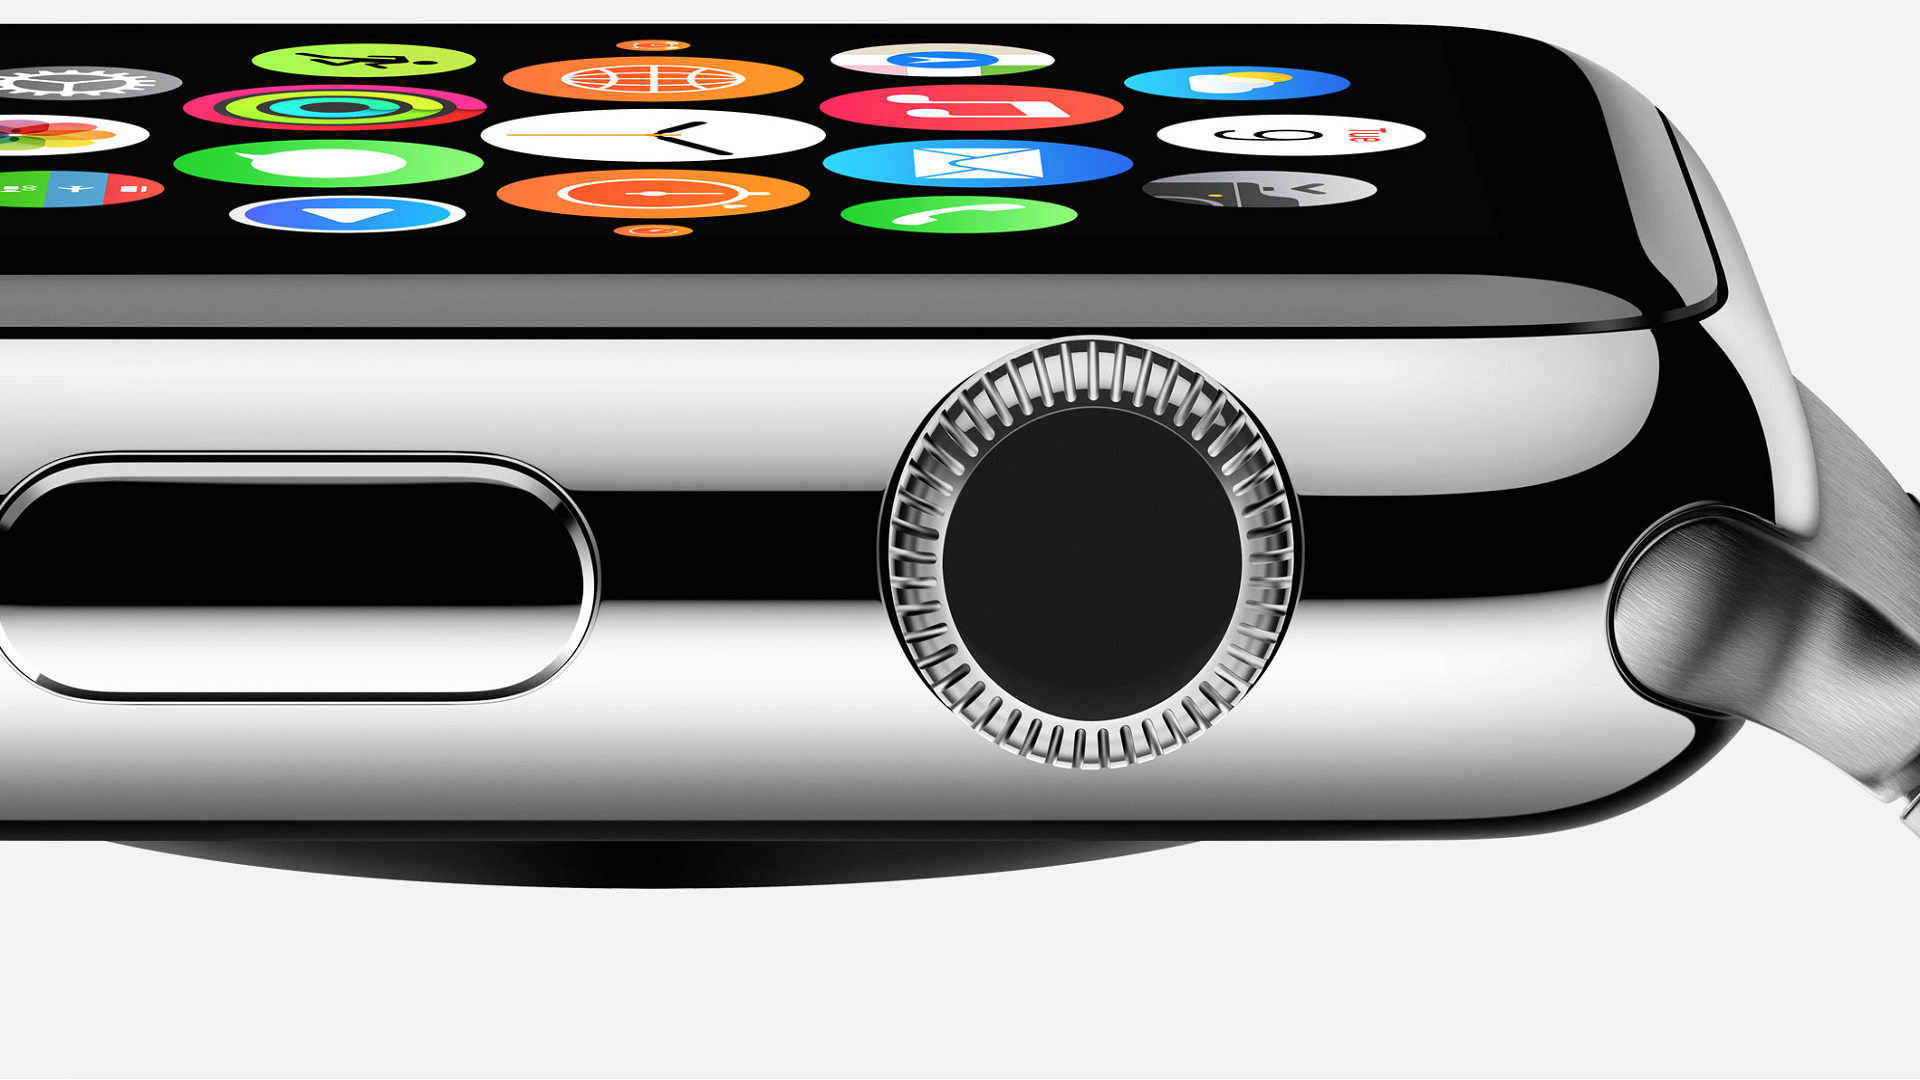 Coach to Release Stylish New Apple Watch Bands This Year